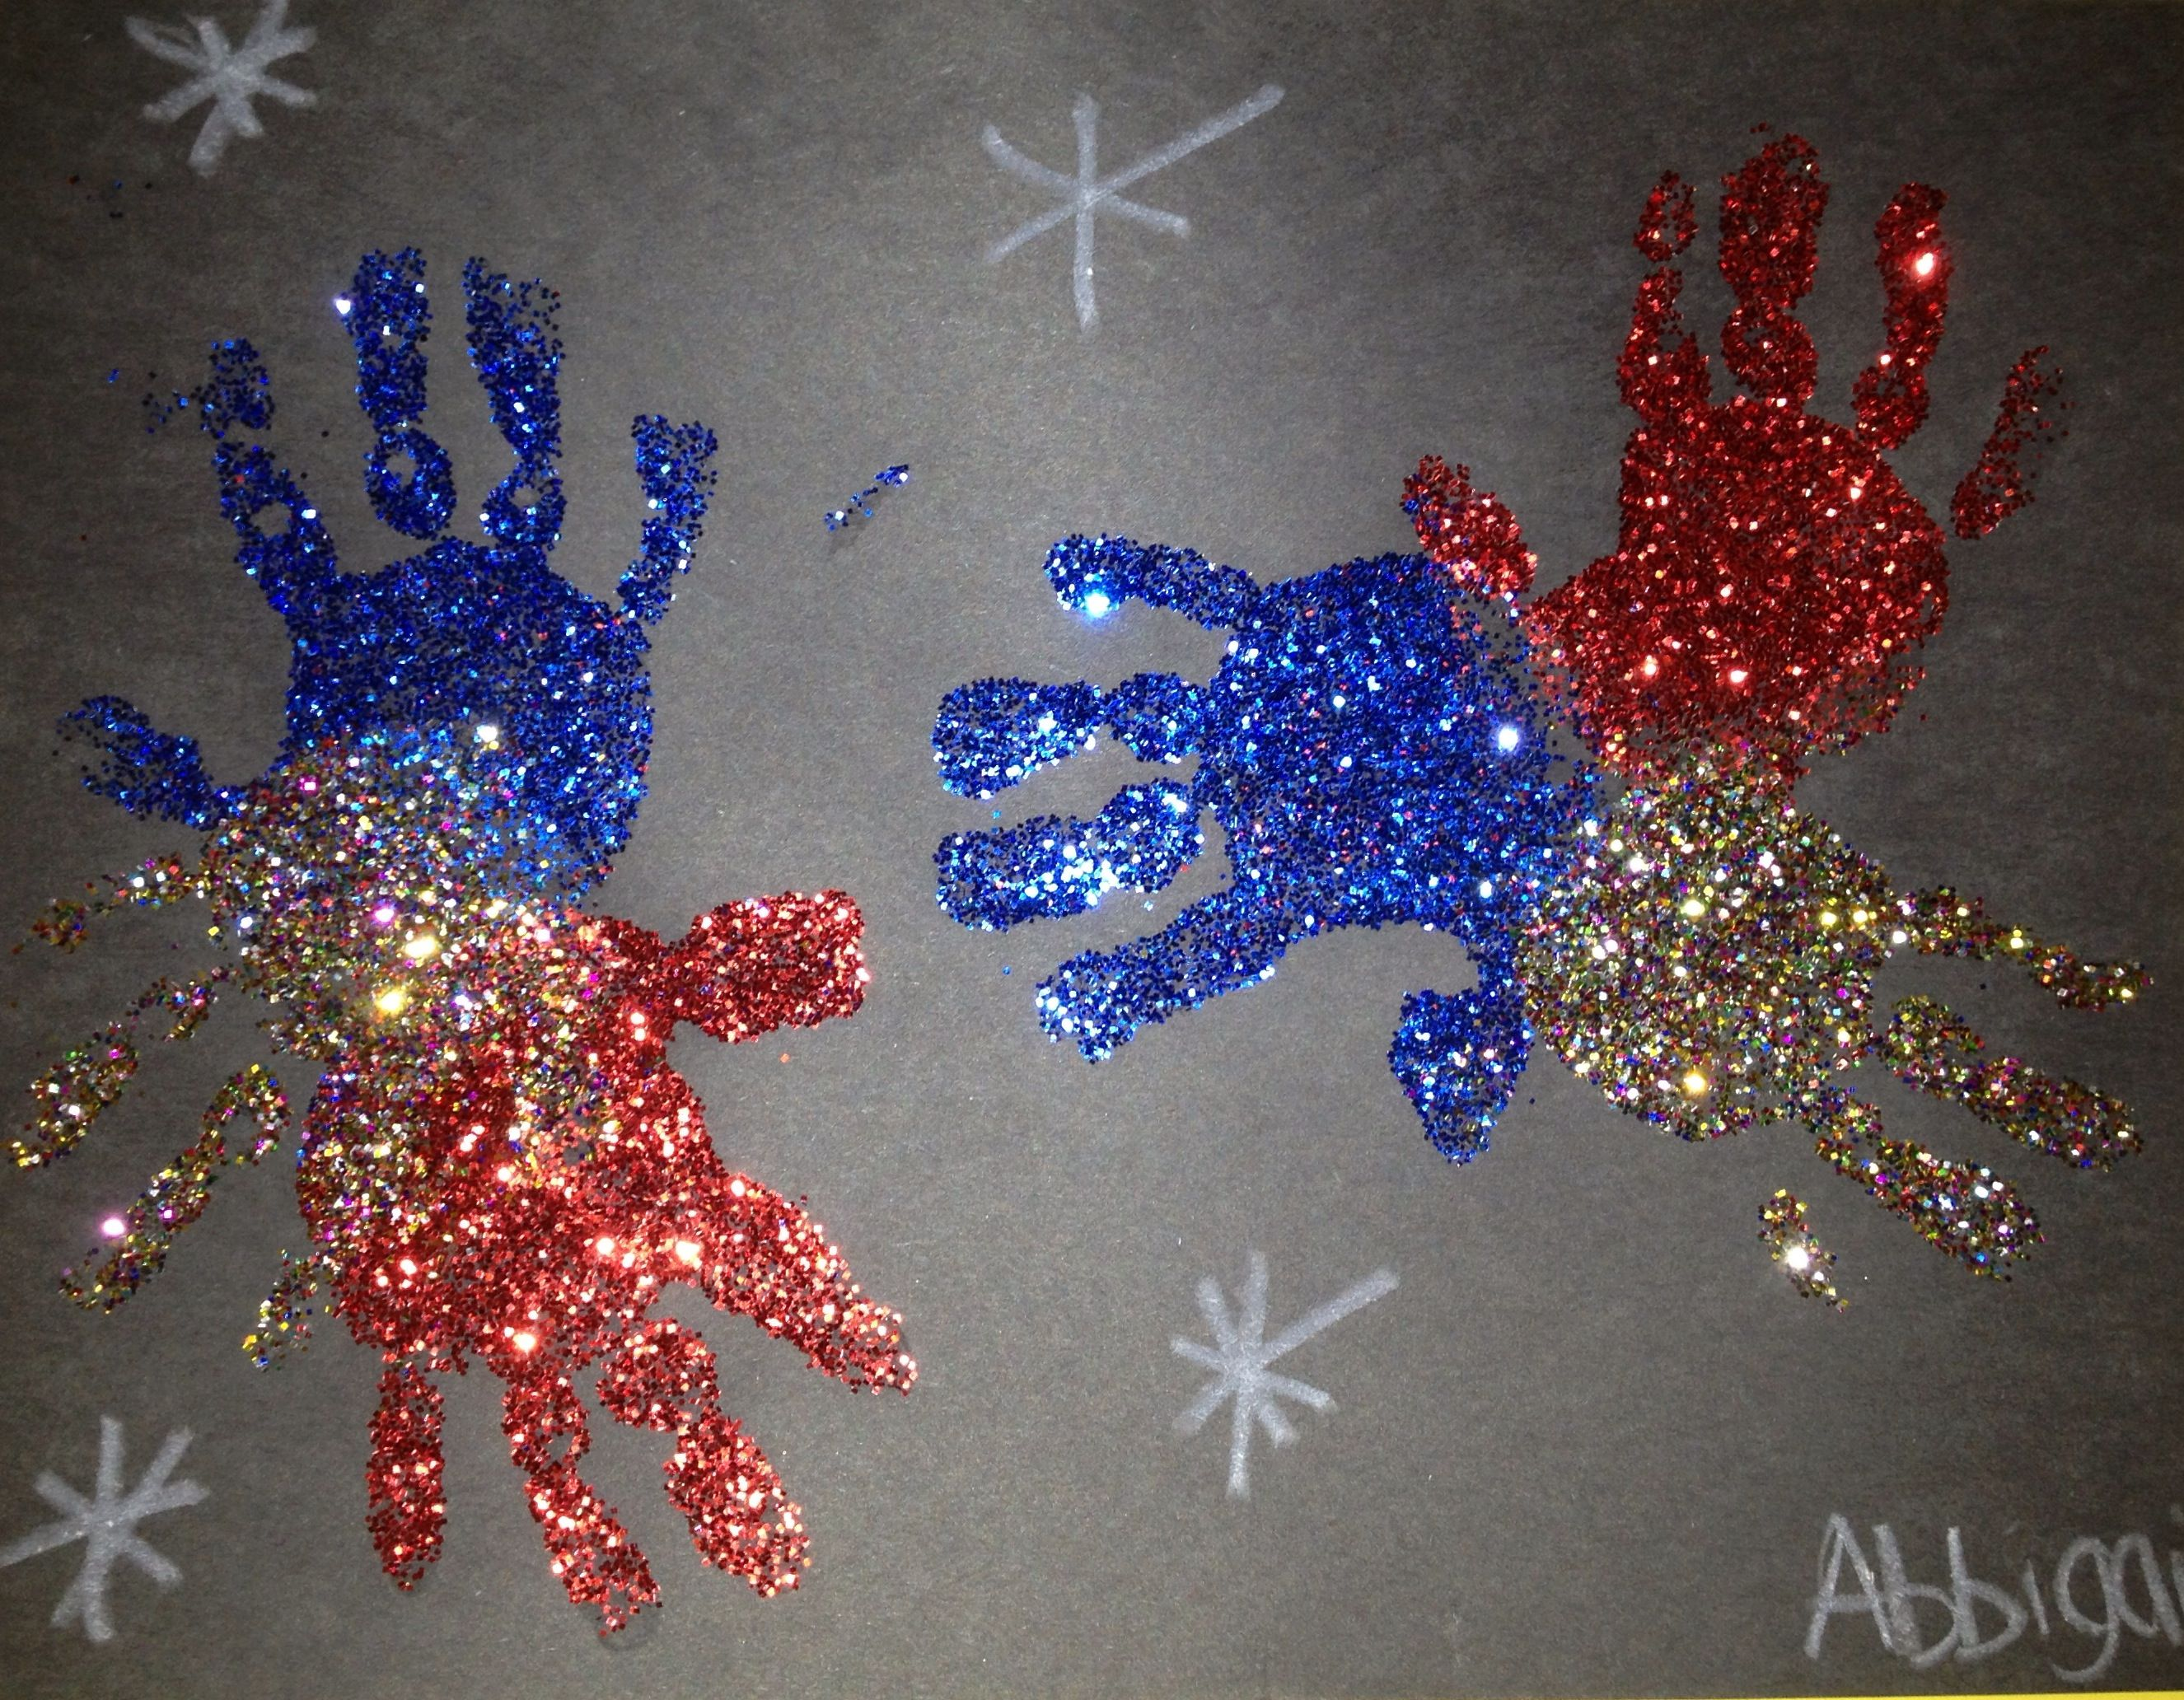 Handprint Glitter Fireworks 2 Year Old Art Fourth Of July Preschool Projects